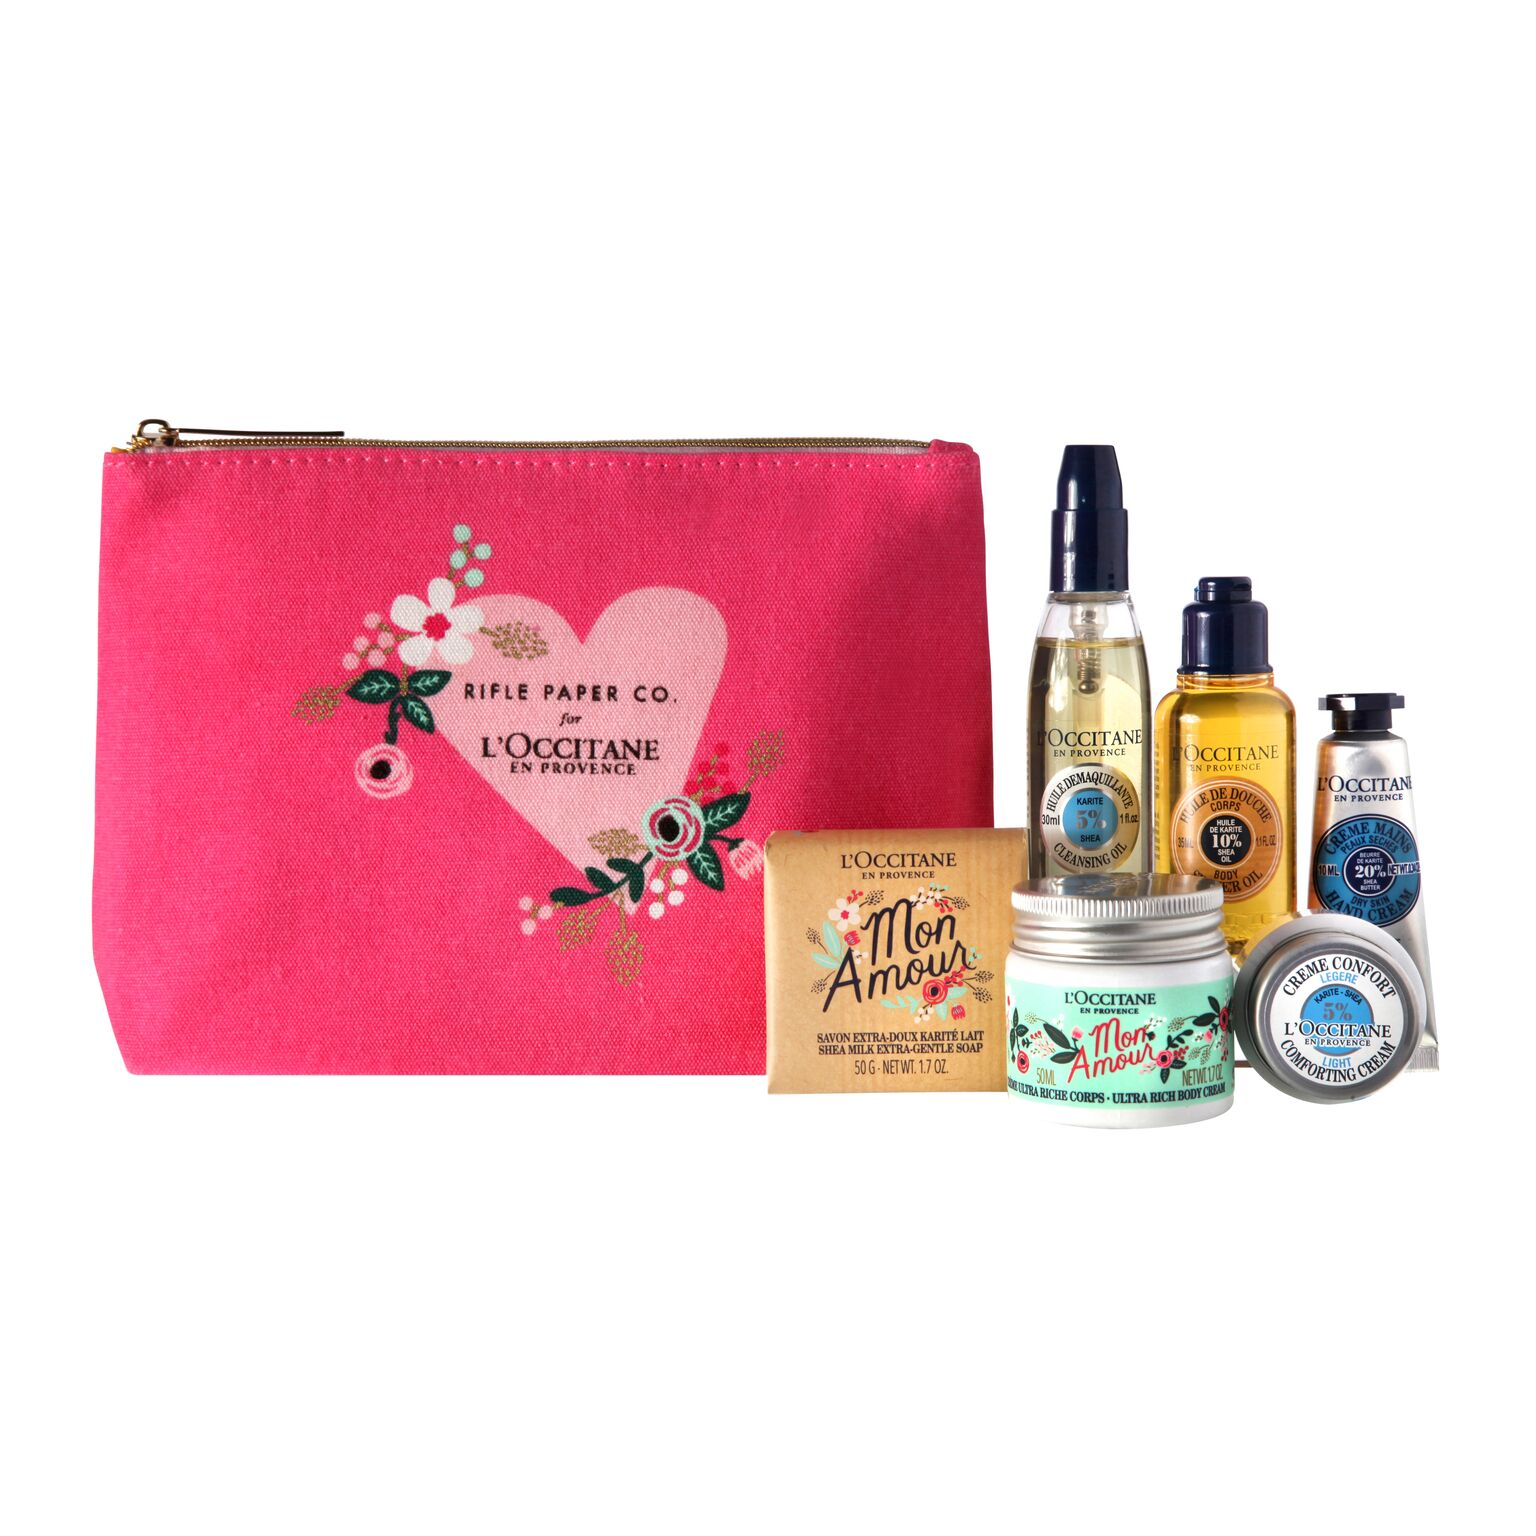 L'Occitane Rifle Paper Co. Shea Butter Loves Collection